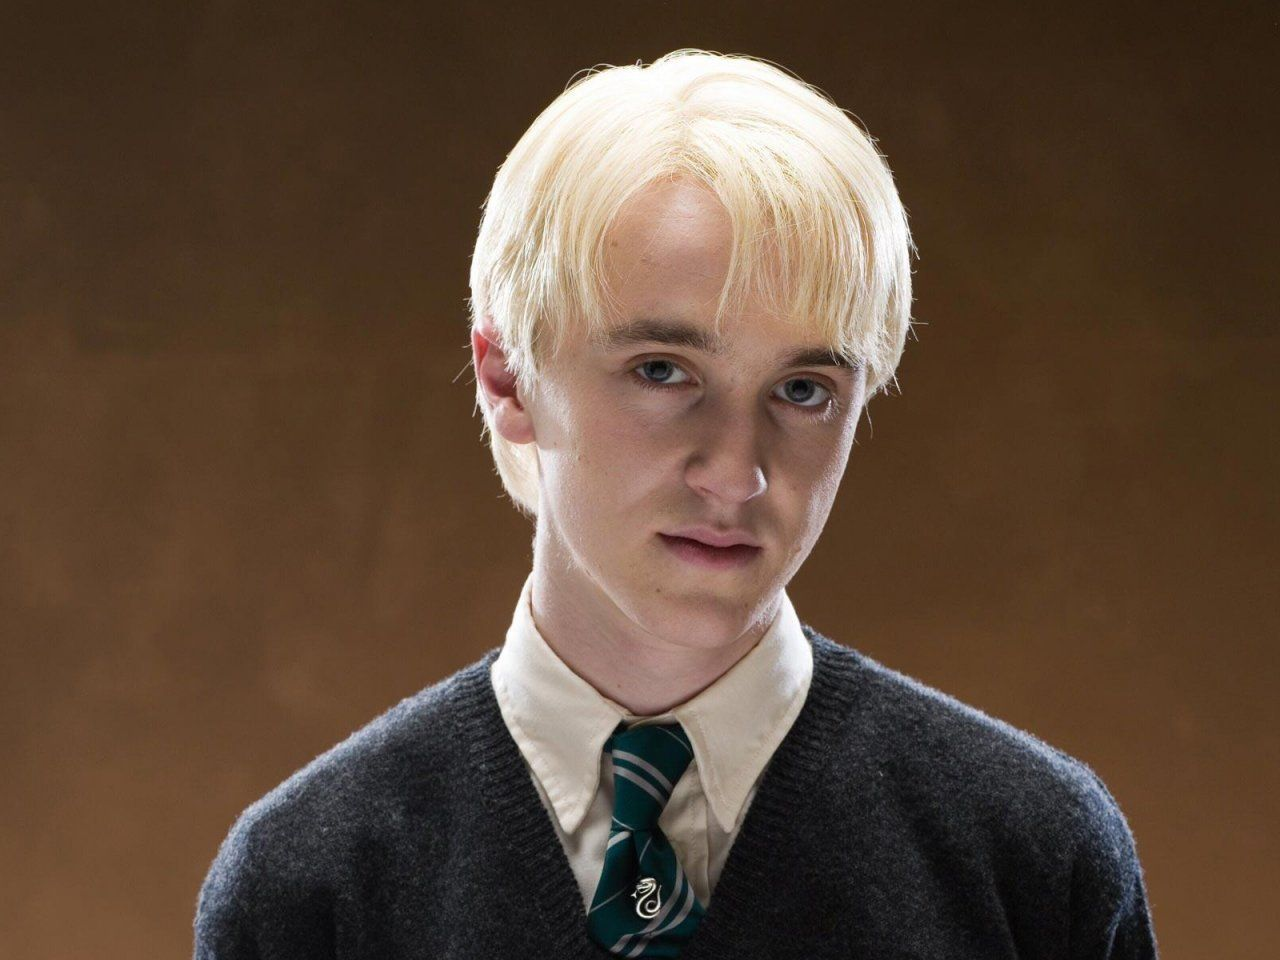 Draco Malfoy I M Starting To Wonder If I Should Make Him His Own Board